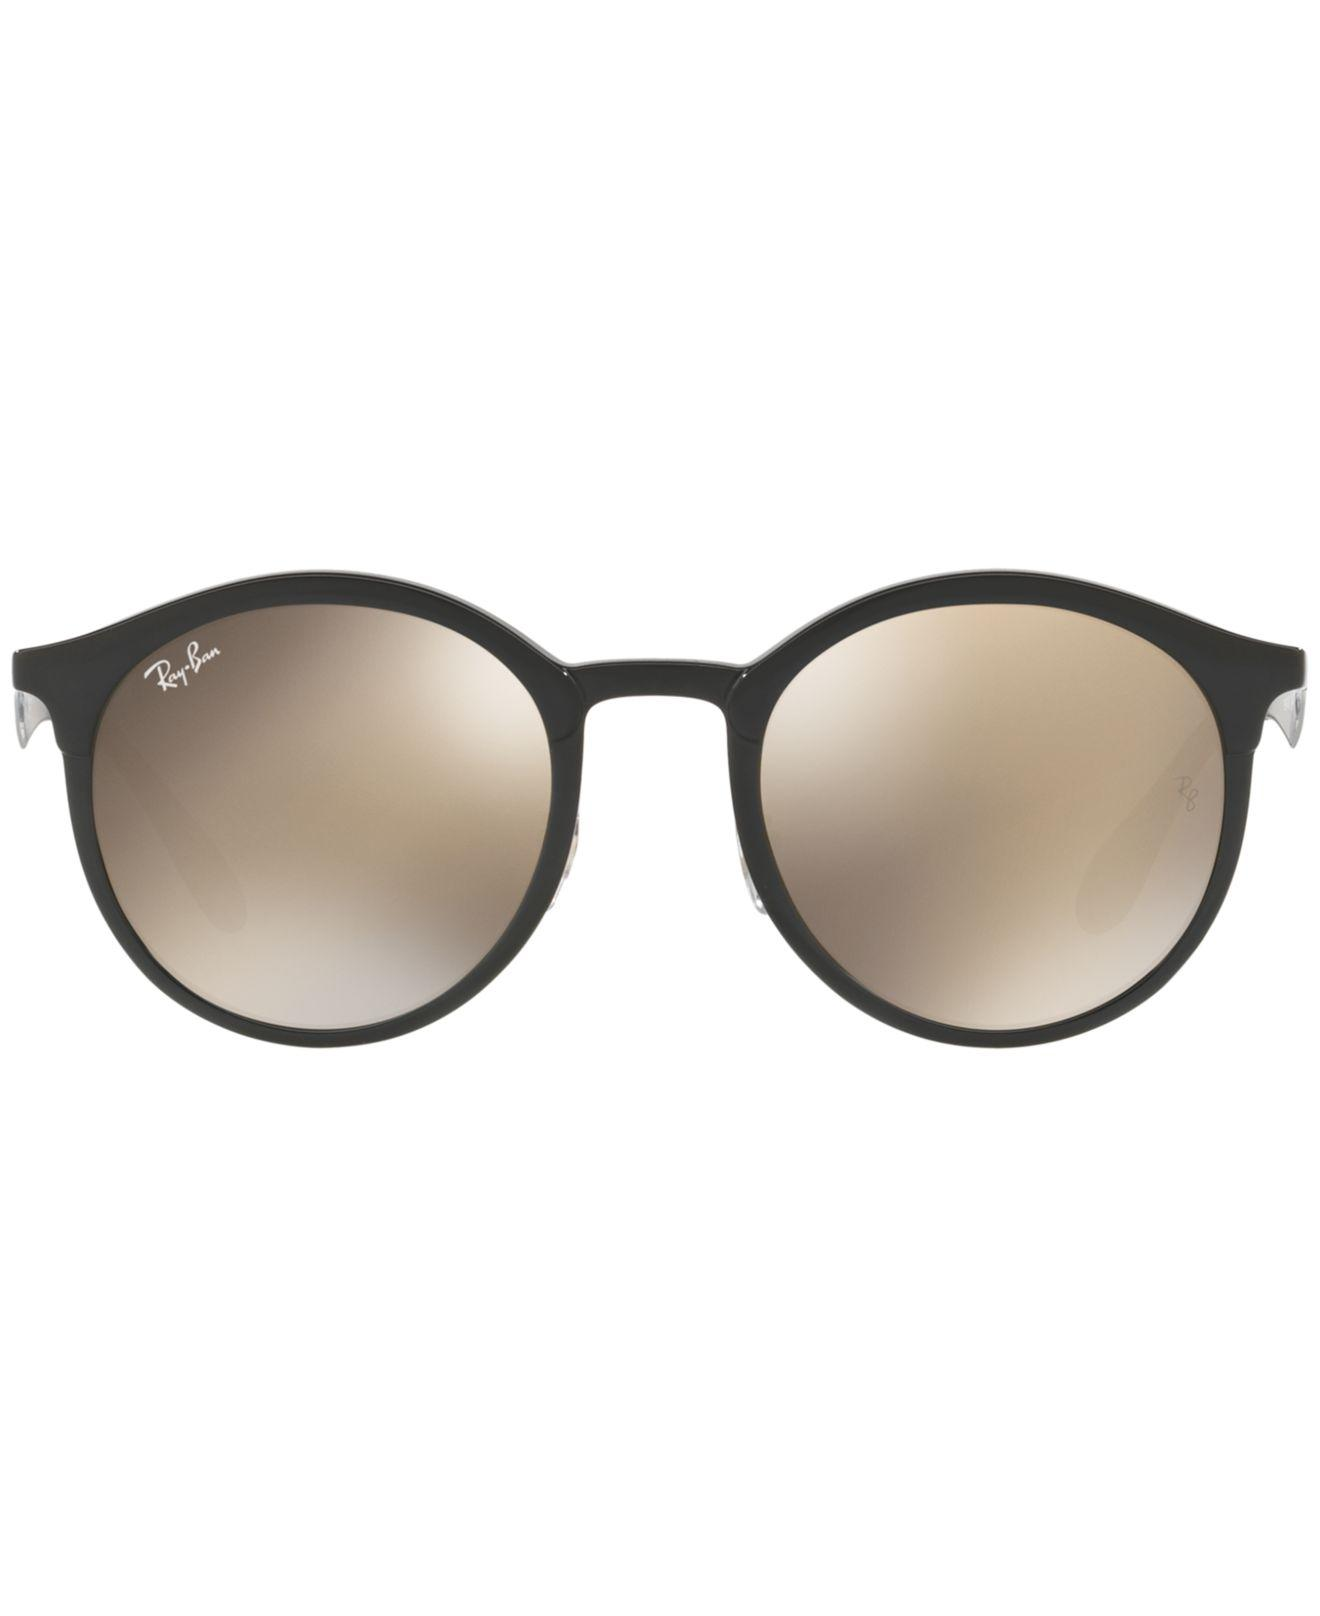 68480e073a Lyst - Ray-Ban Rb4277 in Brown for Men